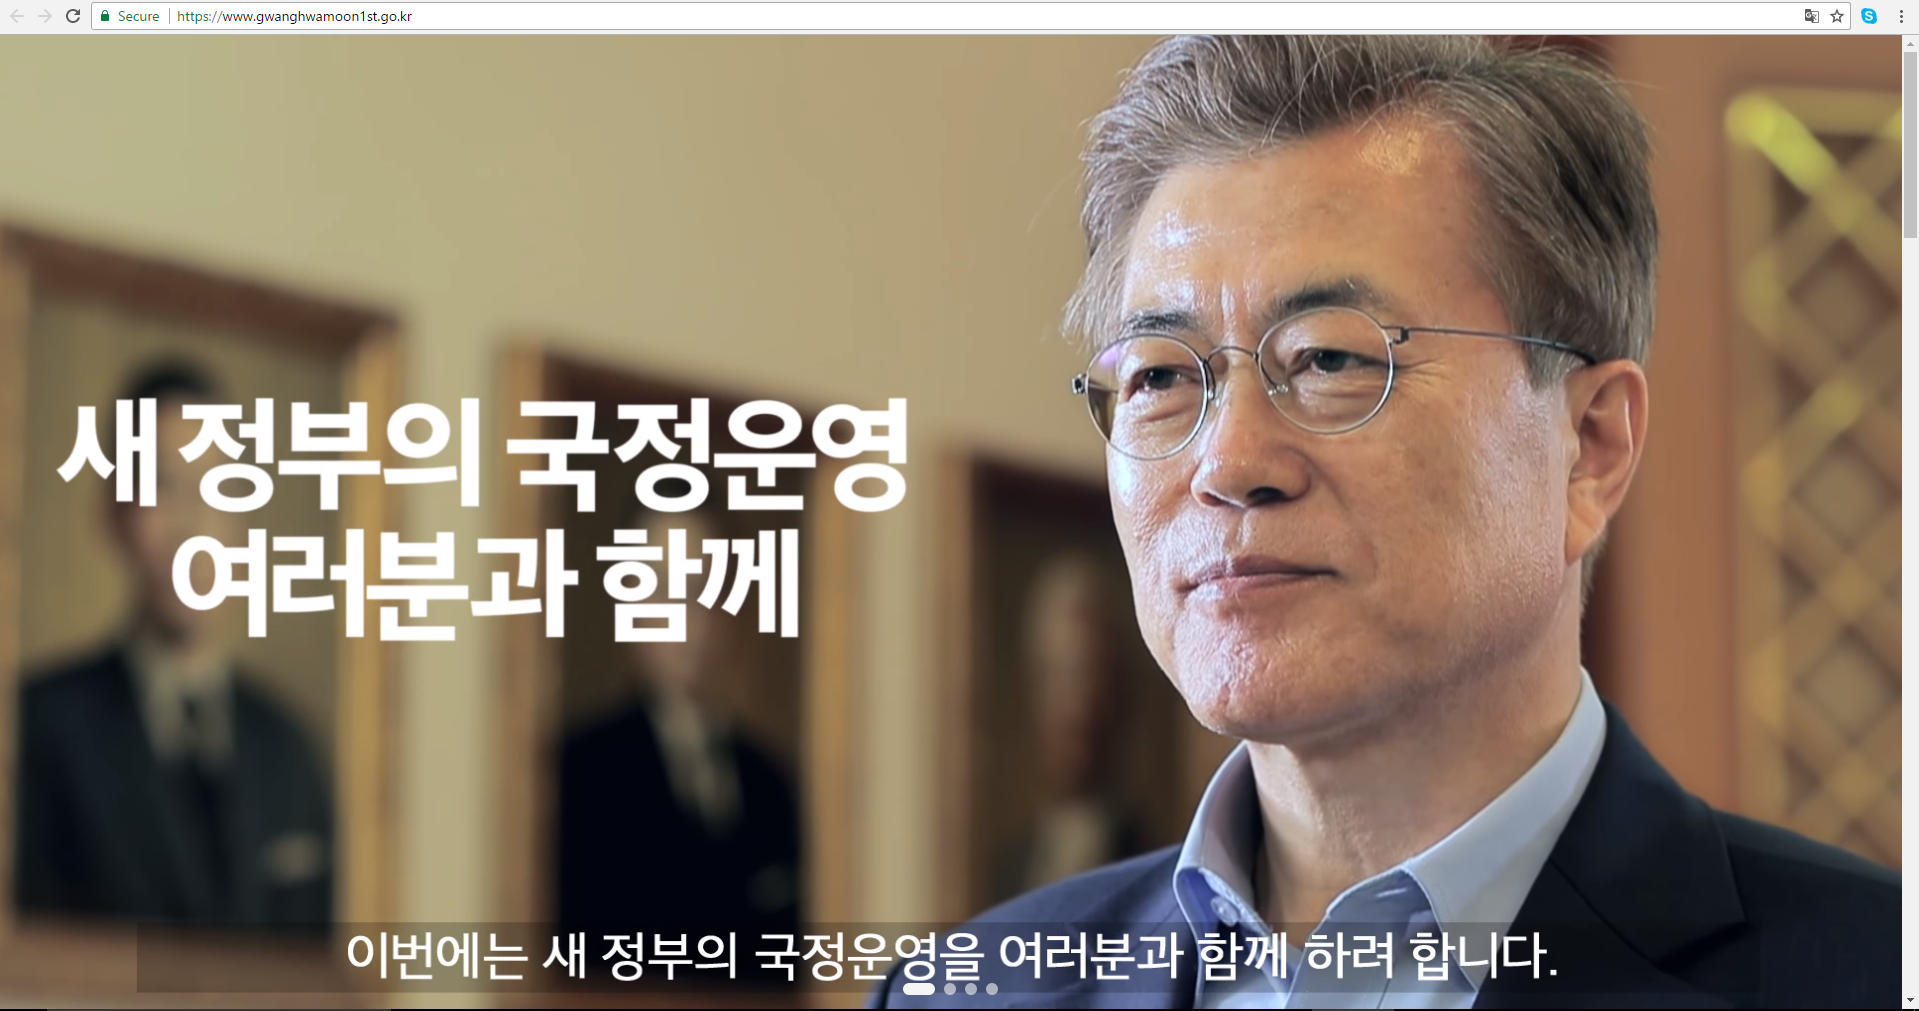 President Moon accepts foreigners' complaints. Send yours TODAY!